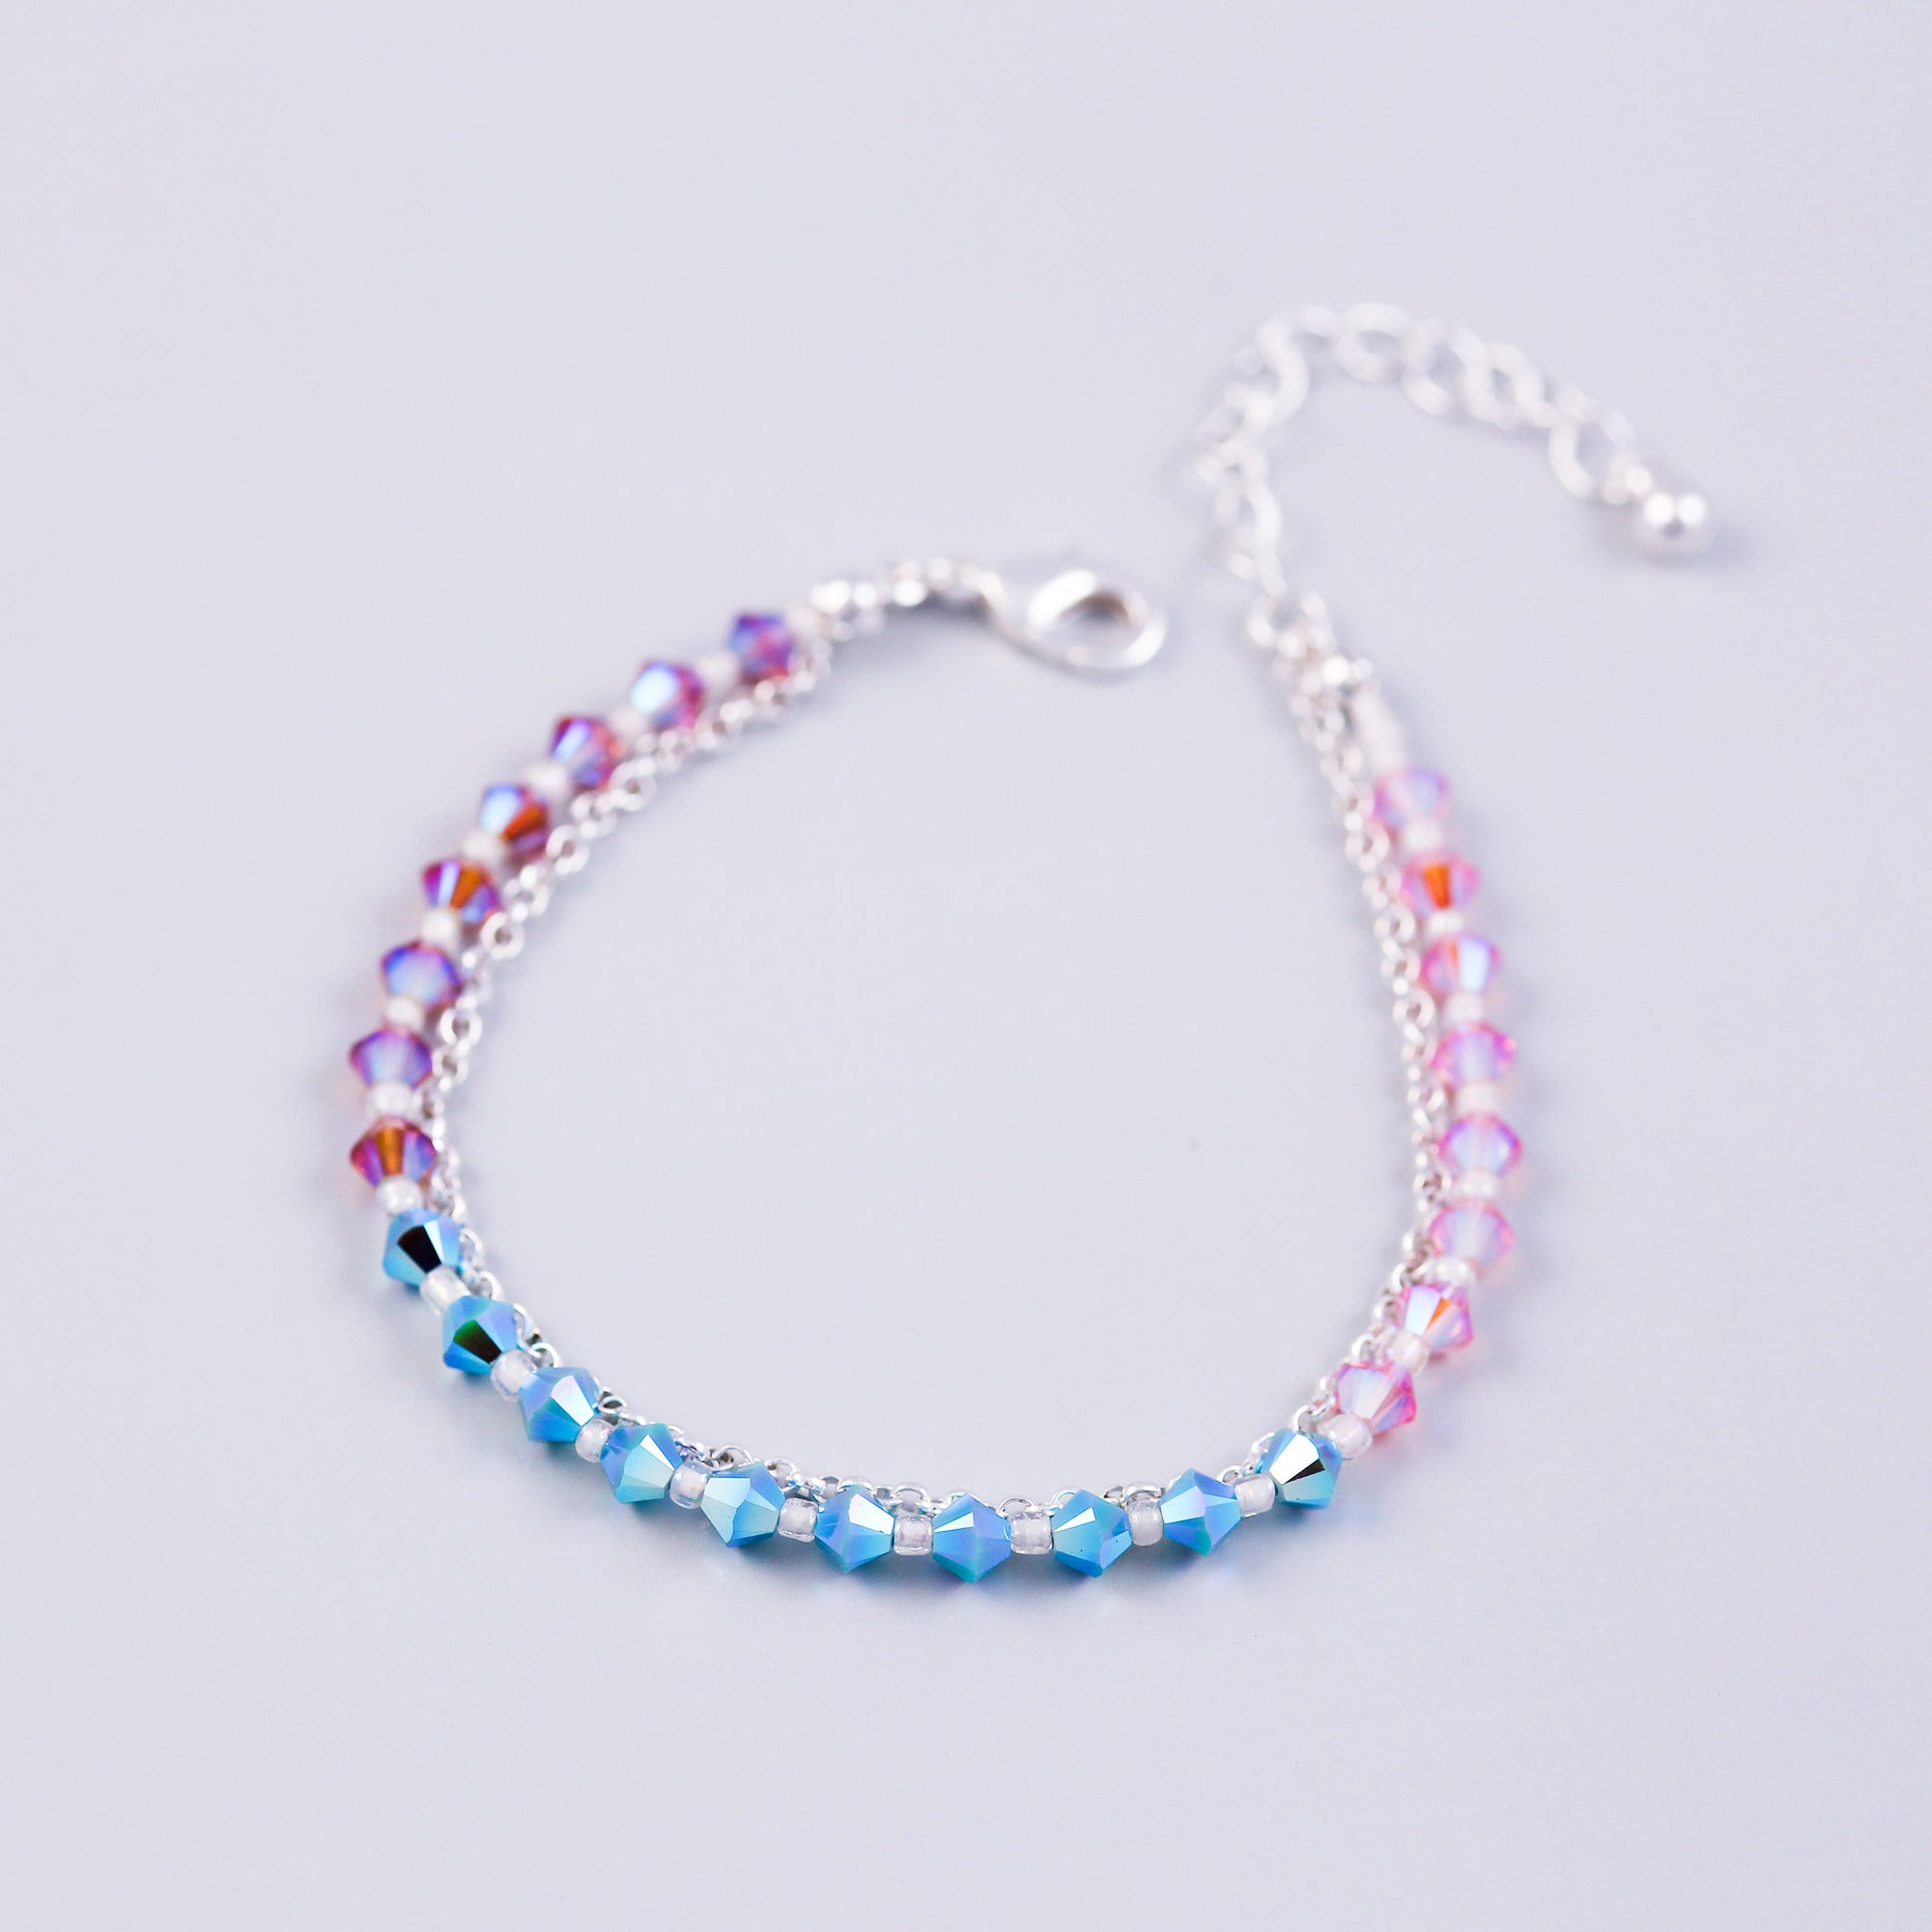 The Four Elements Earth Air Fire Water | Air Element Bracelet | Silver